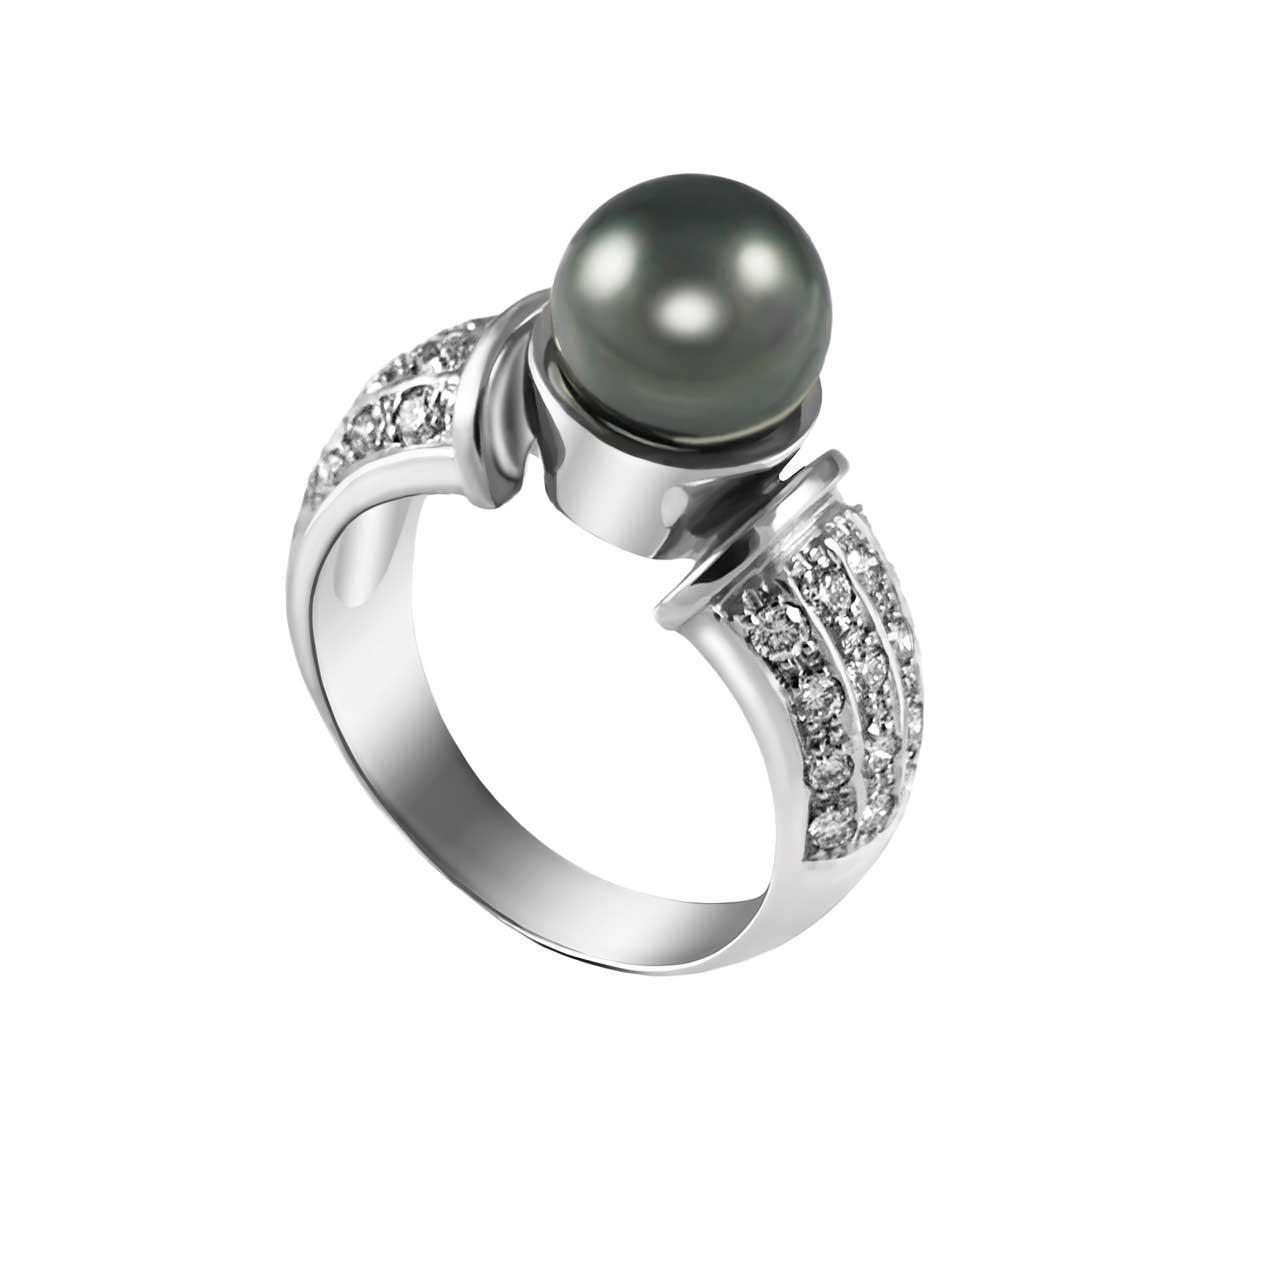 Tahitian Black Pearl and Diamond 14kt White Gold Ring. View 3